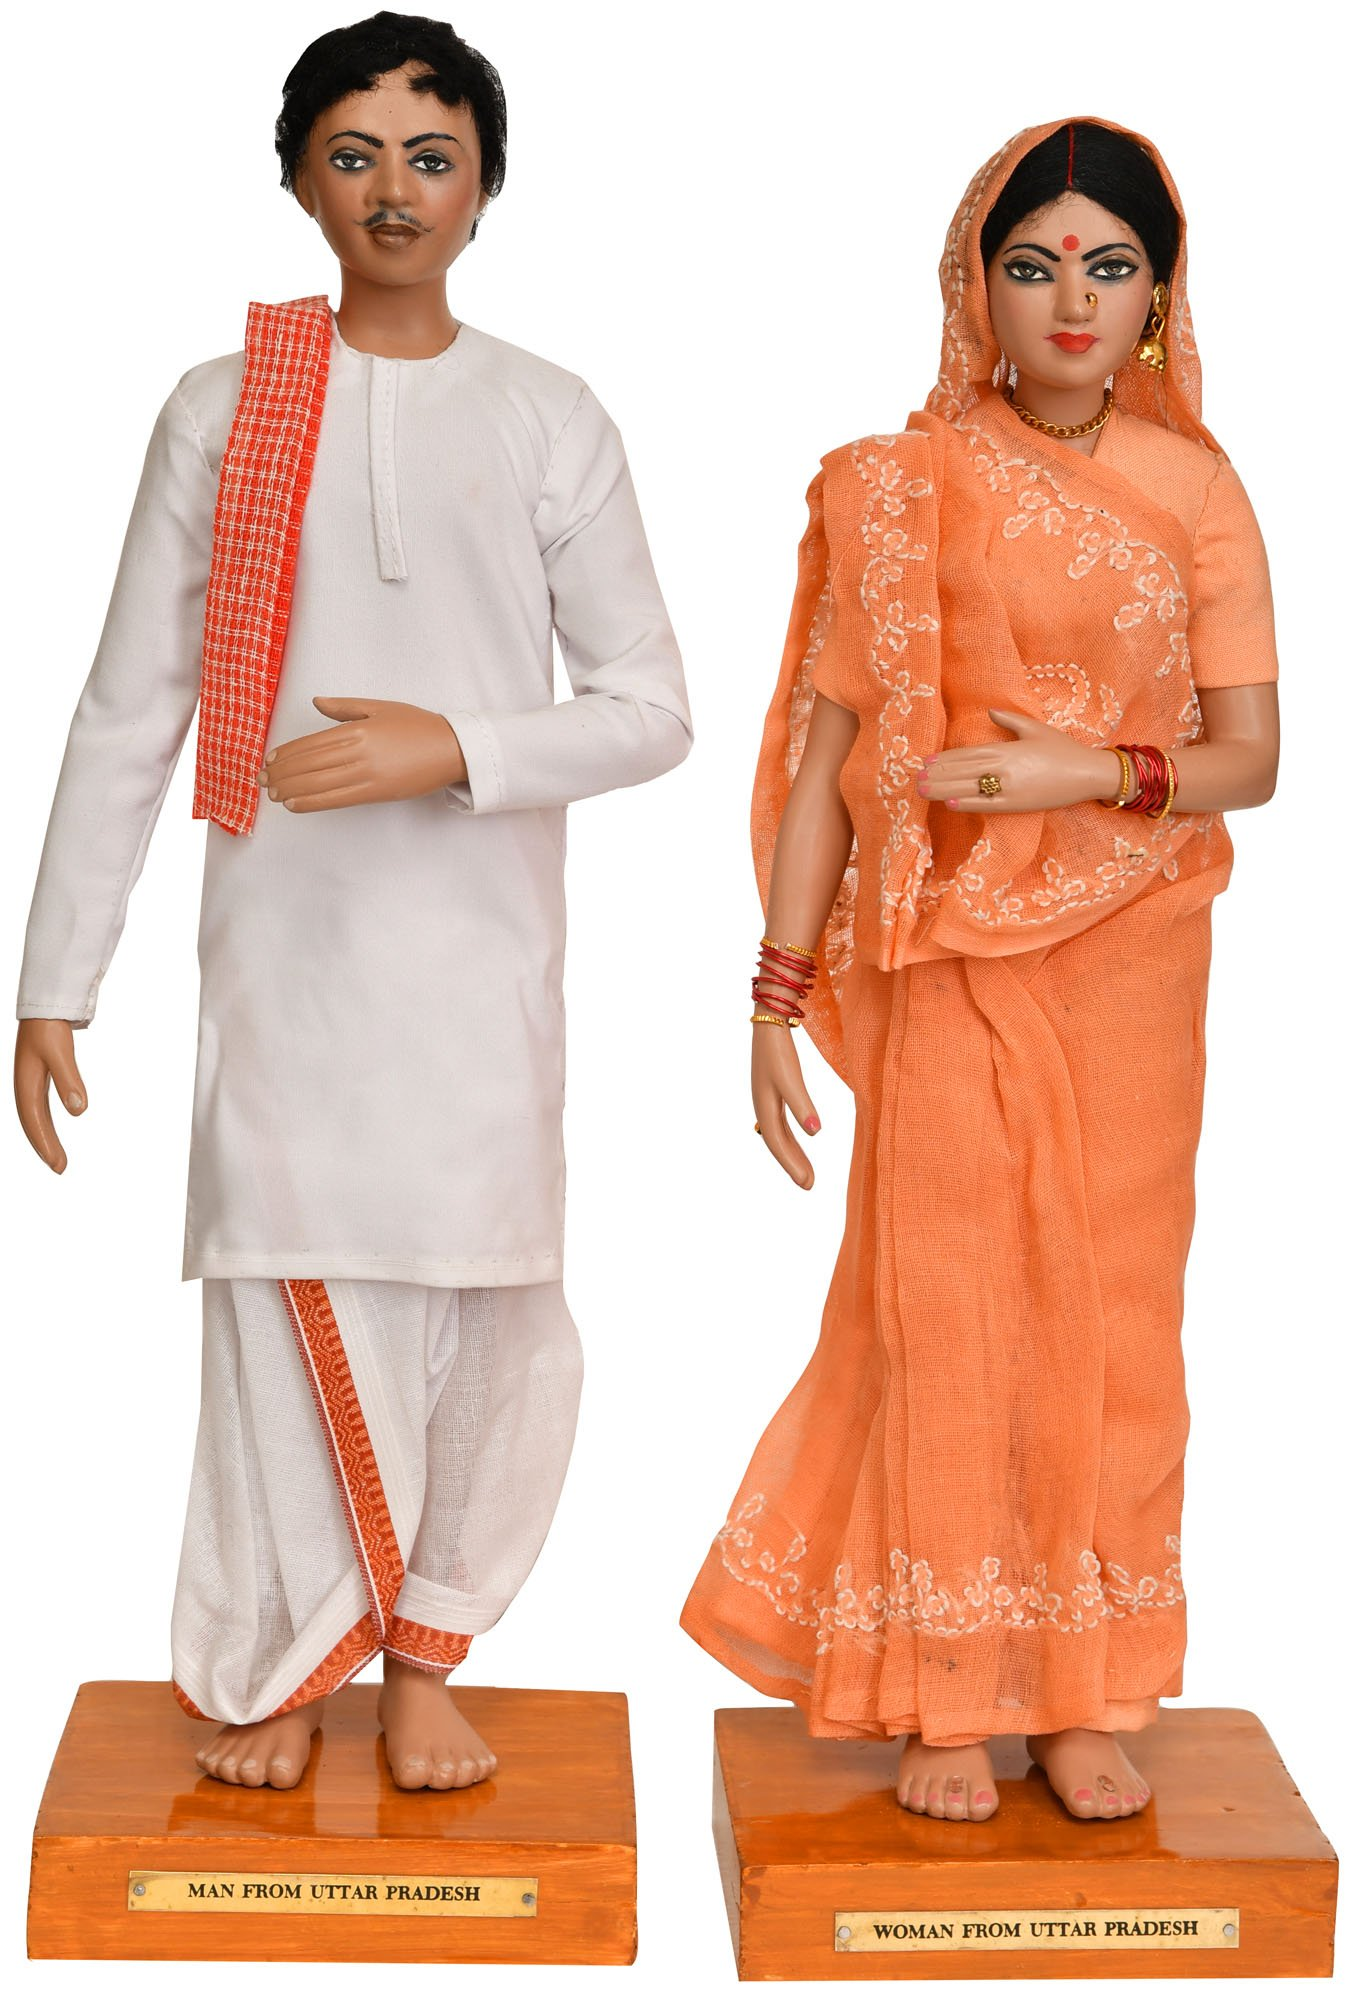 Related Uttar Pradesh traditional dress